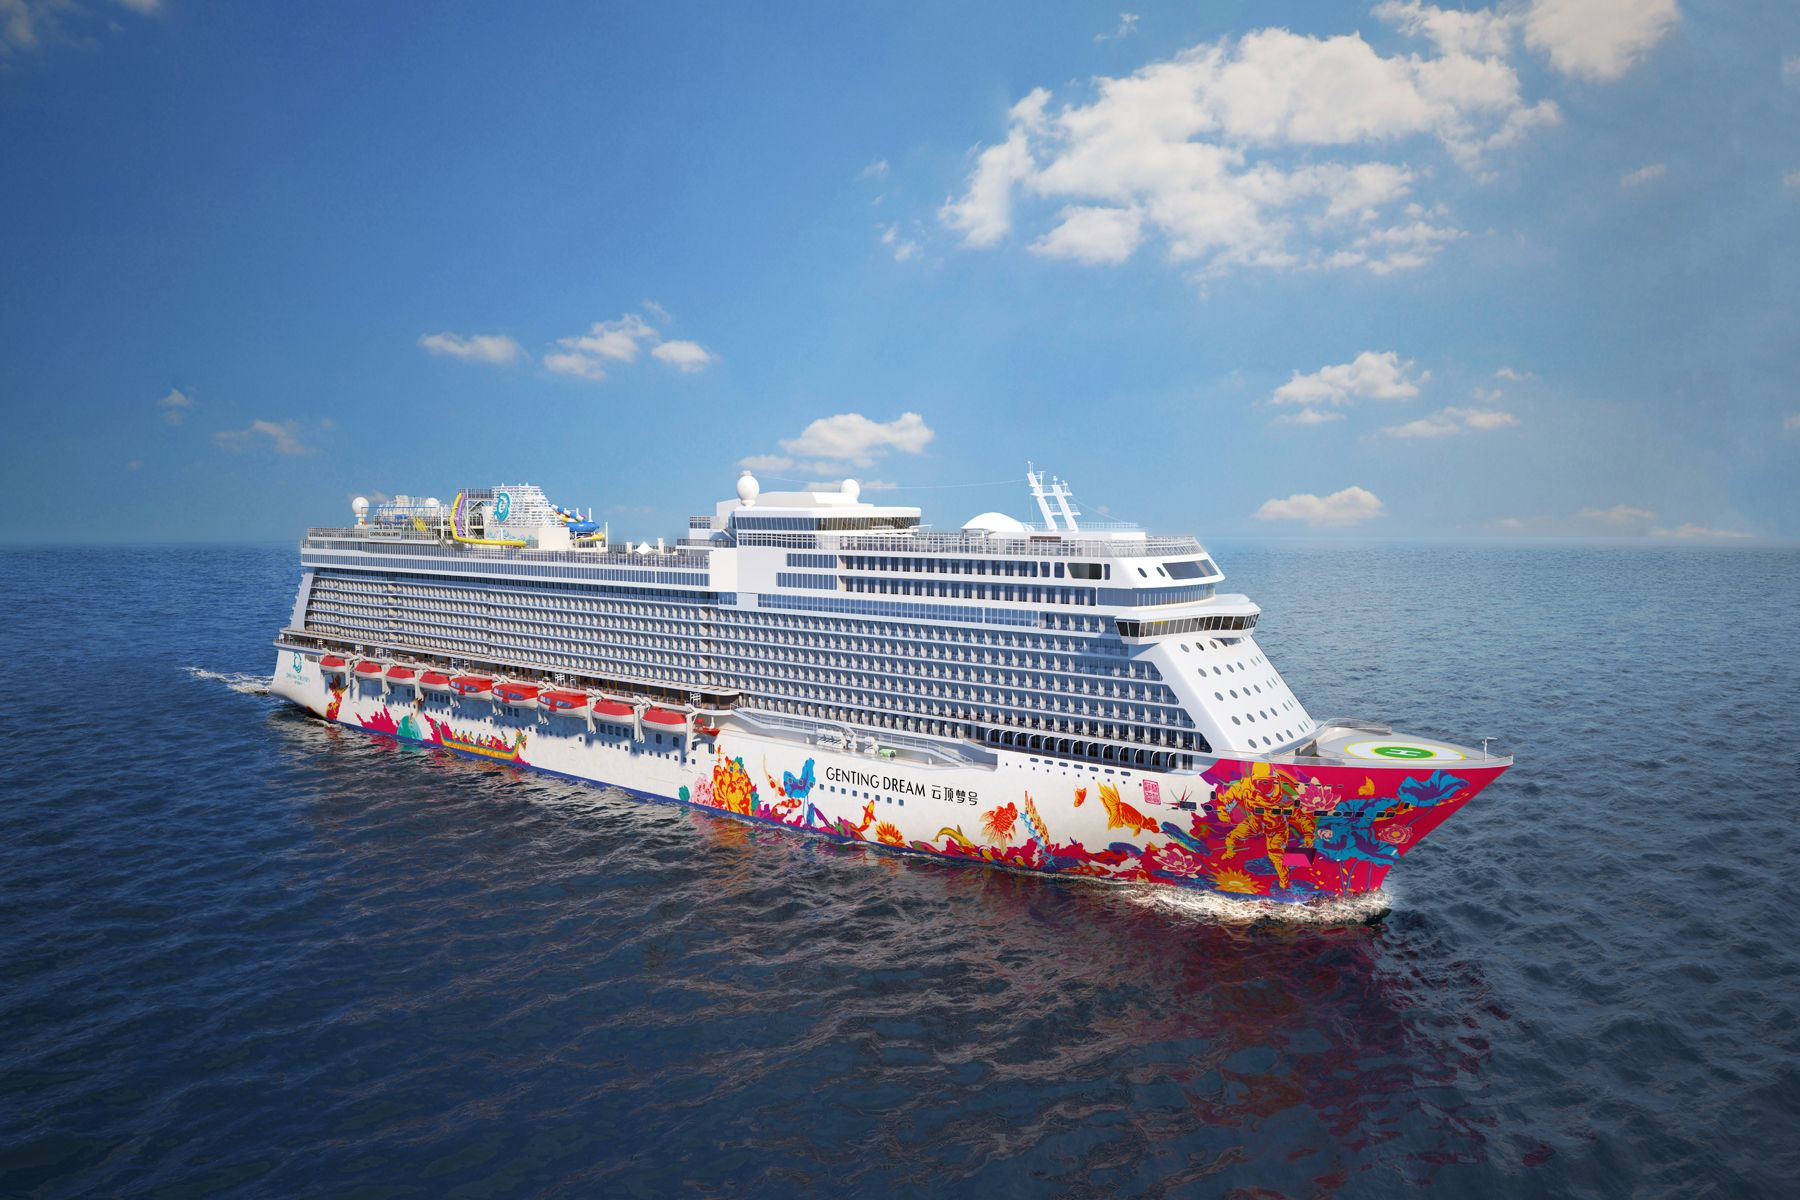 Genting Dream's Exclusive Singapore Voyage With British Royal Family Chef Darren McGrady And Imperial Cuisine Expert Chef Ivan Li